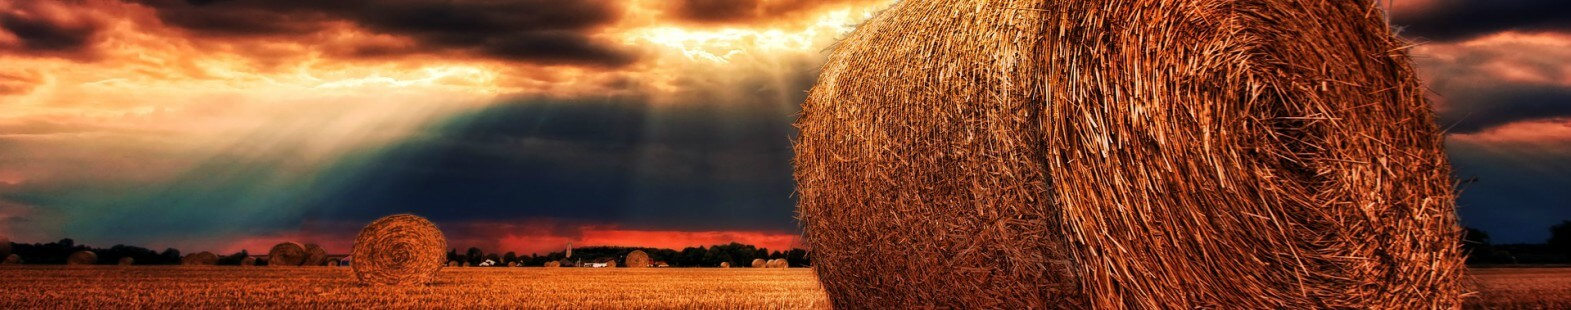 Photo shows a field with bails of hay and setting sun in the distance